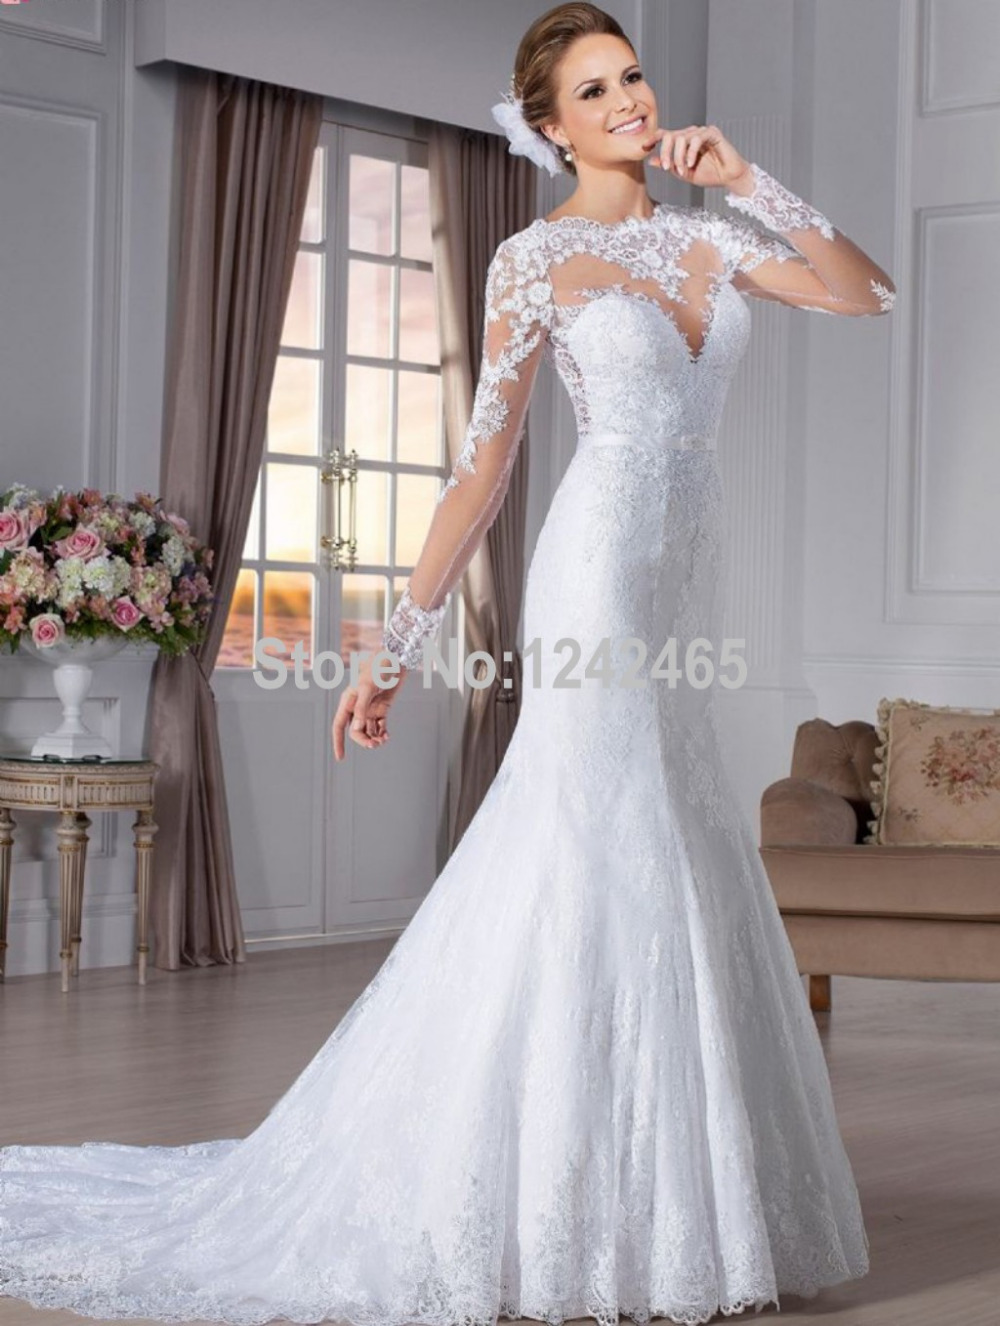 Vintage inspired sexy wedding dress wedding dresses dressesss for Vintage mermaid style wedding dresses